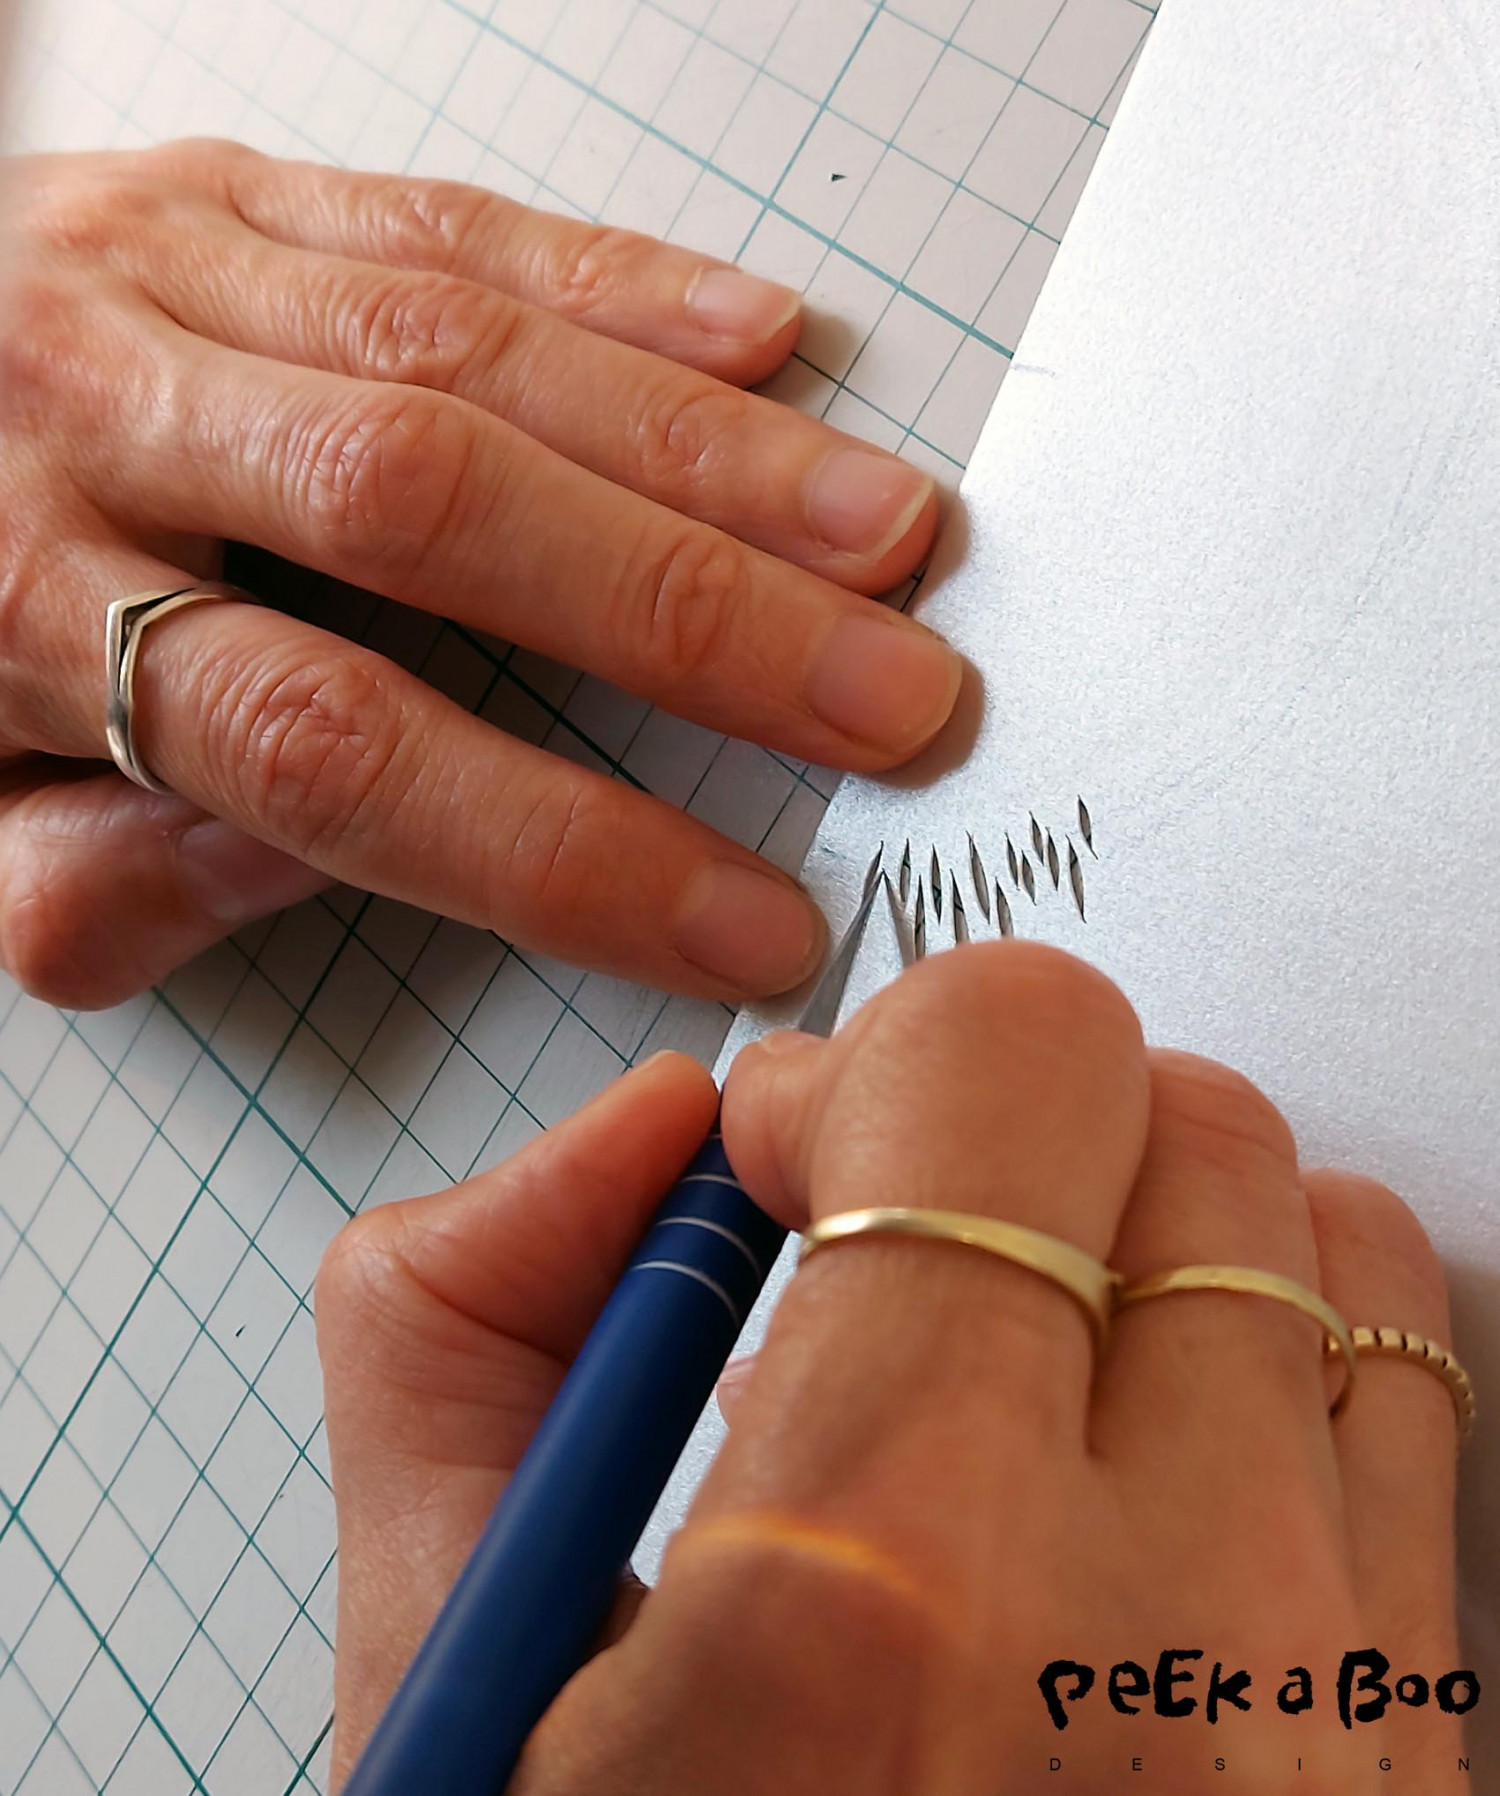 The delicate work where each hole in the paper is handcut by Vicki Zoé.